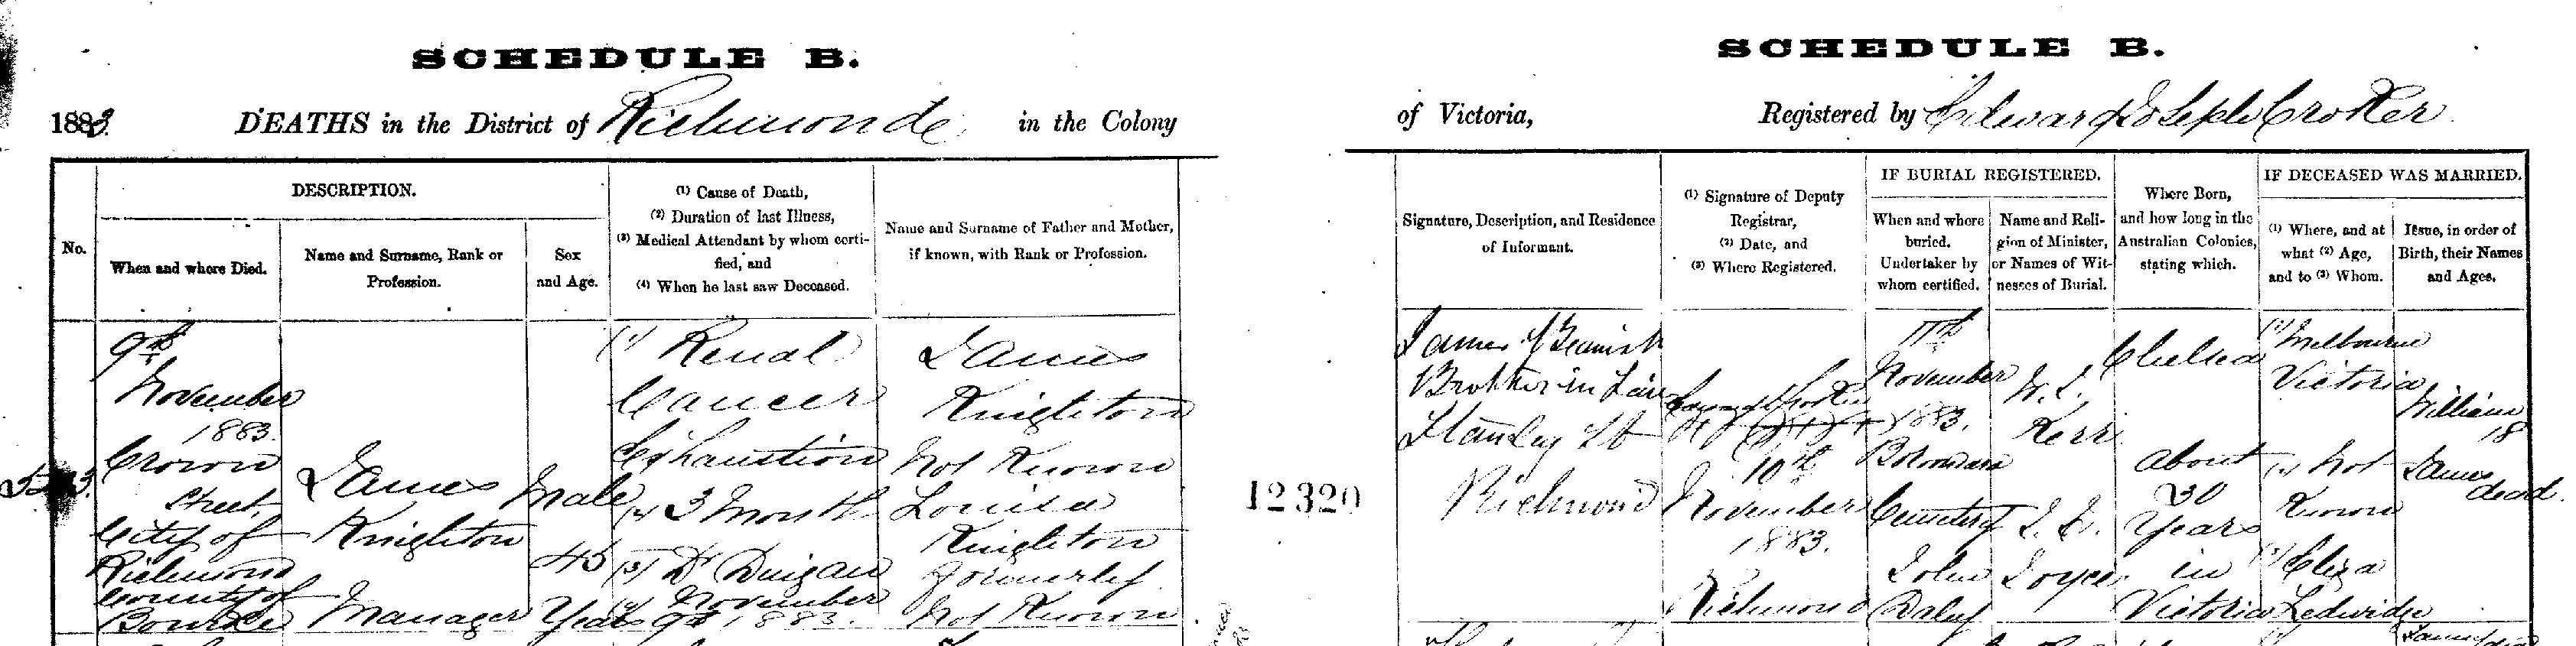 James Knighton Death Certificate 1883_cropped